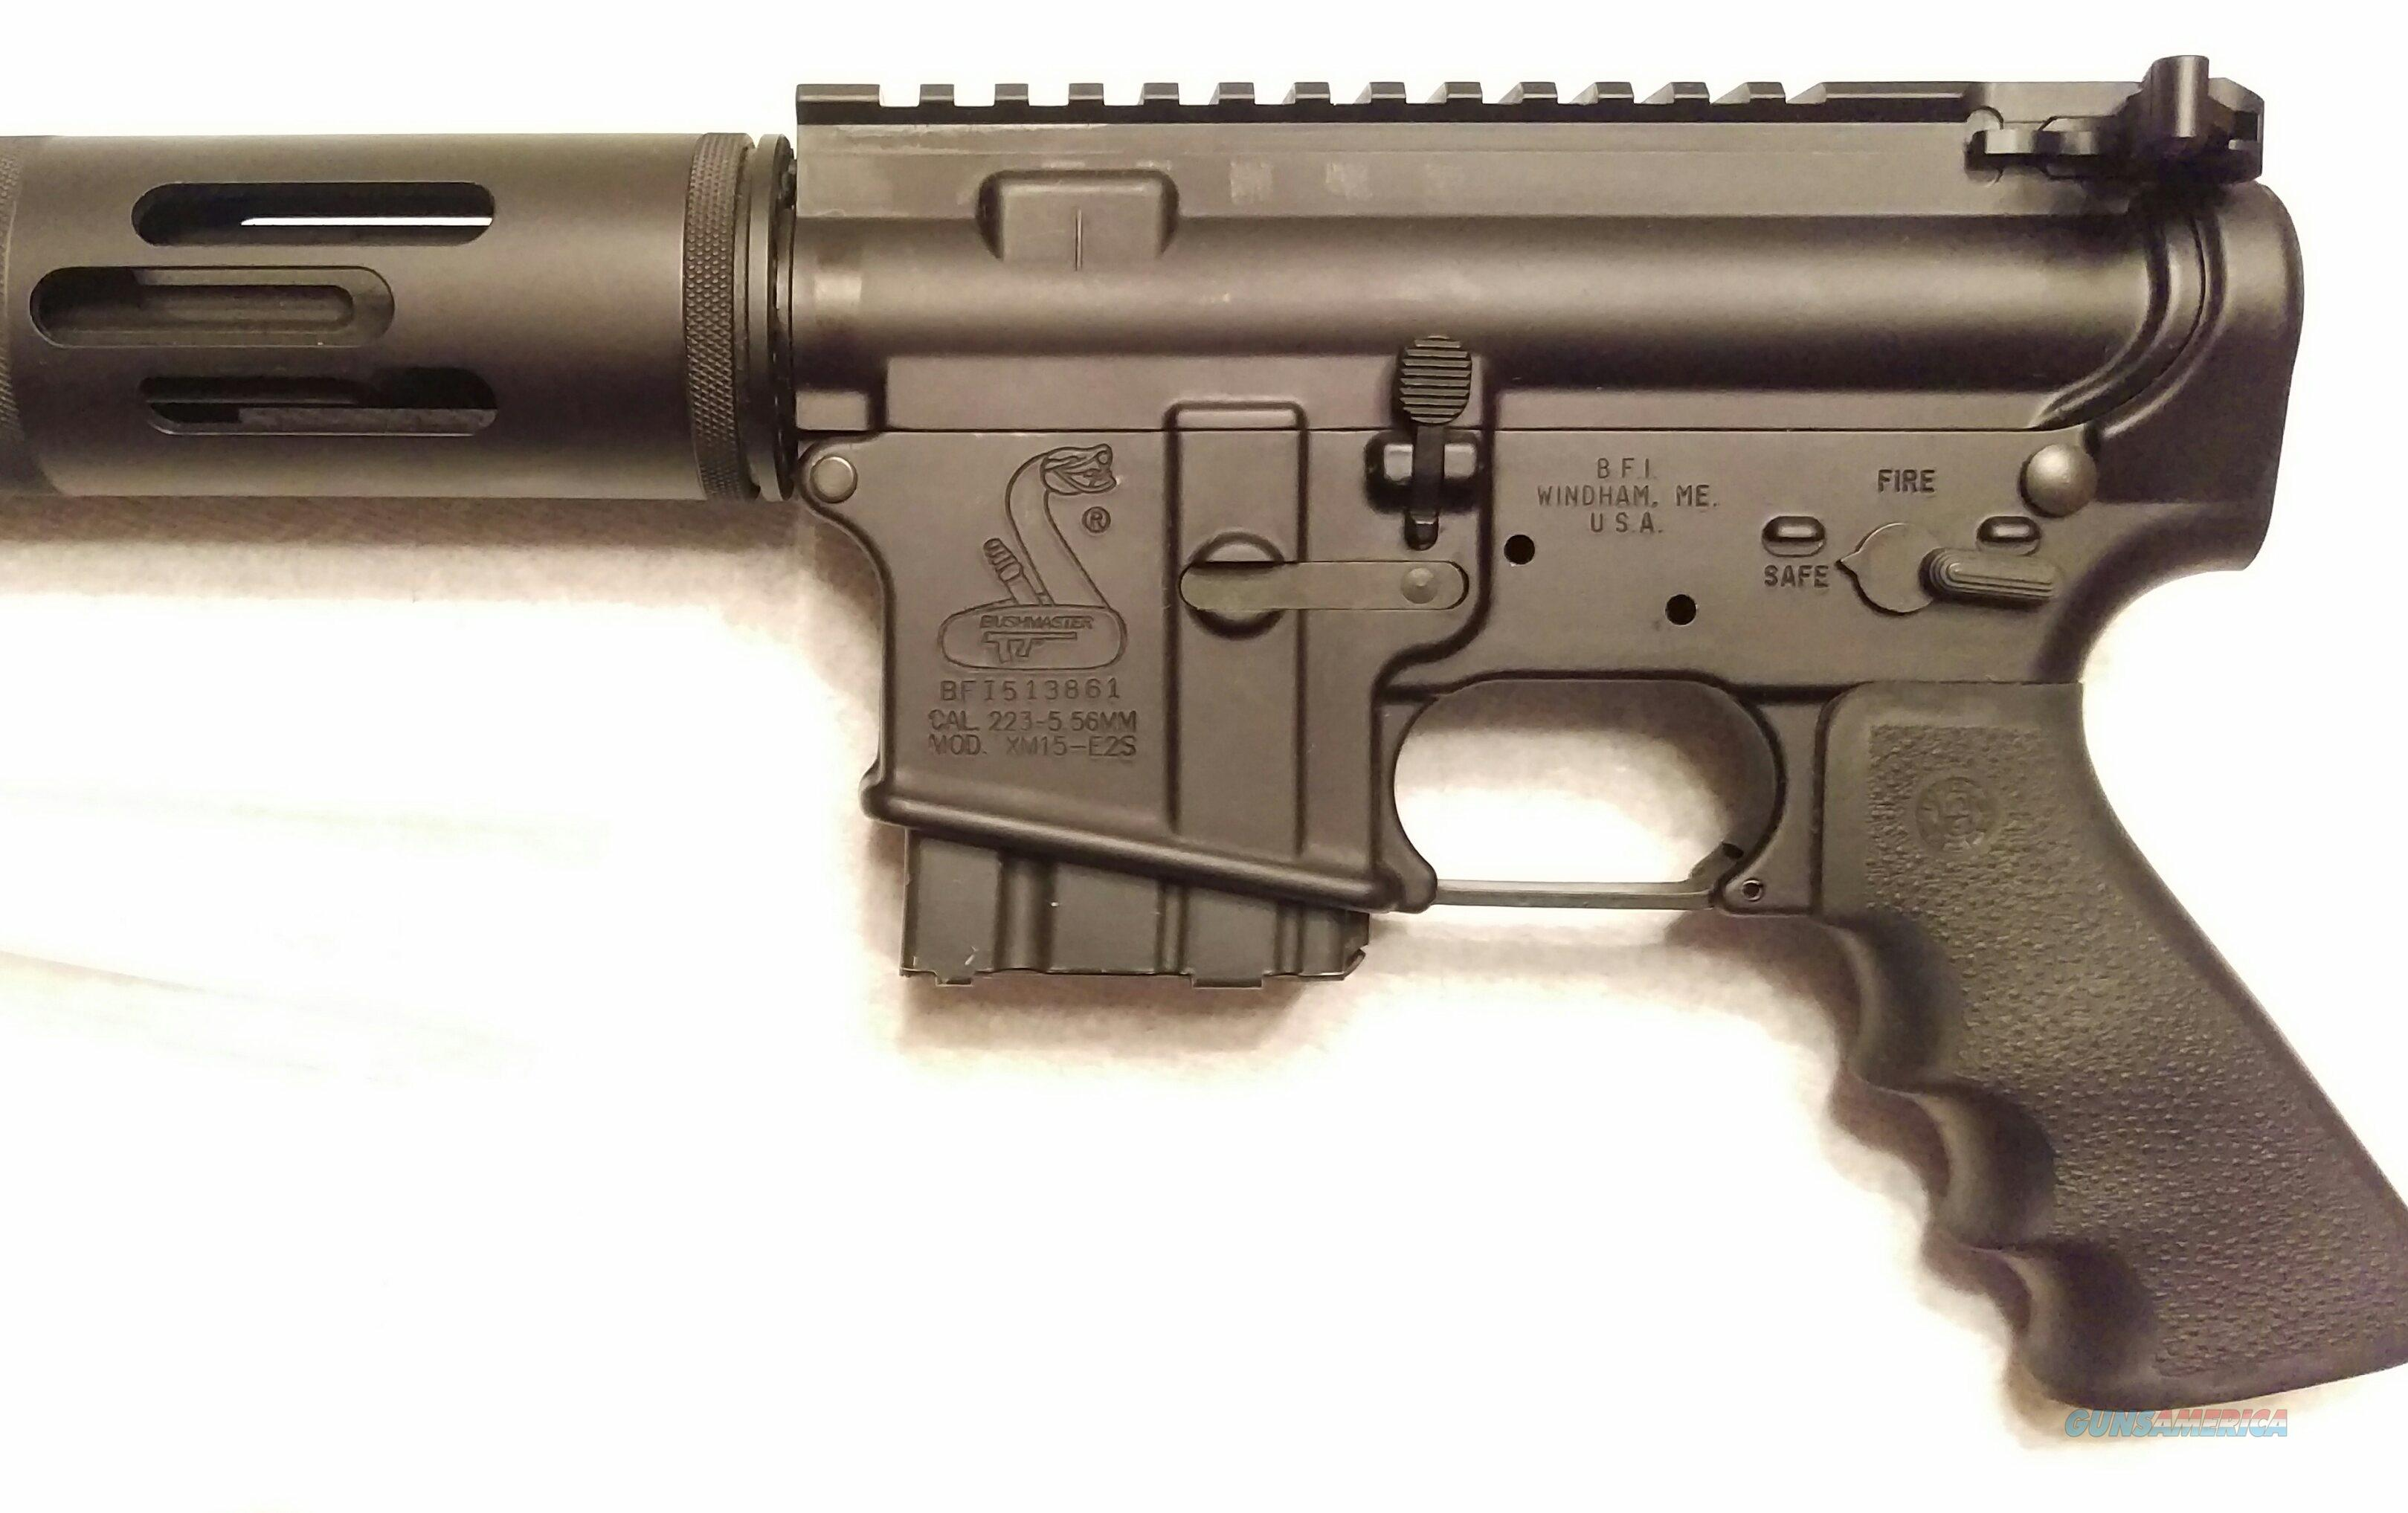 Bushmaster Predator AR-15 upper lower receiver  Guns > Rifles > Bushmaster Rifles > Complete Rifles